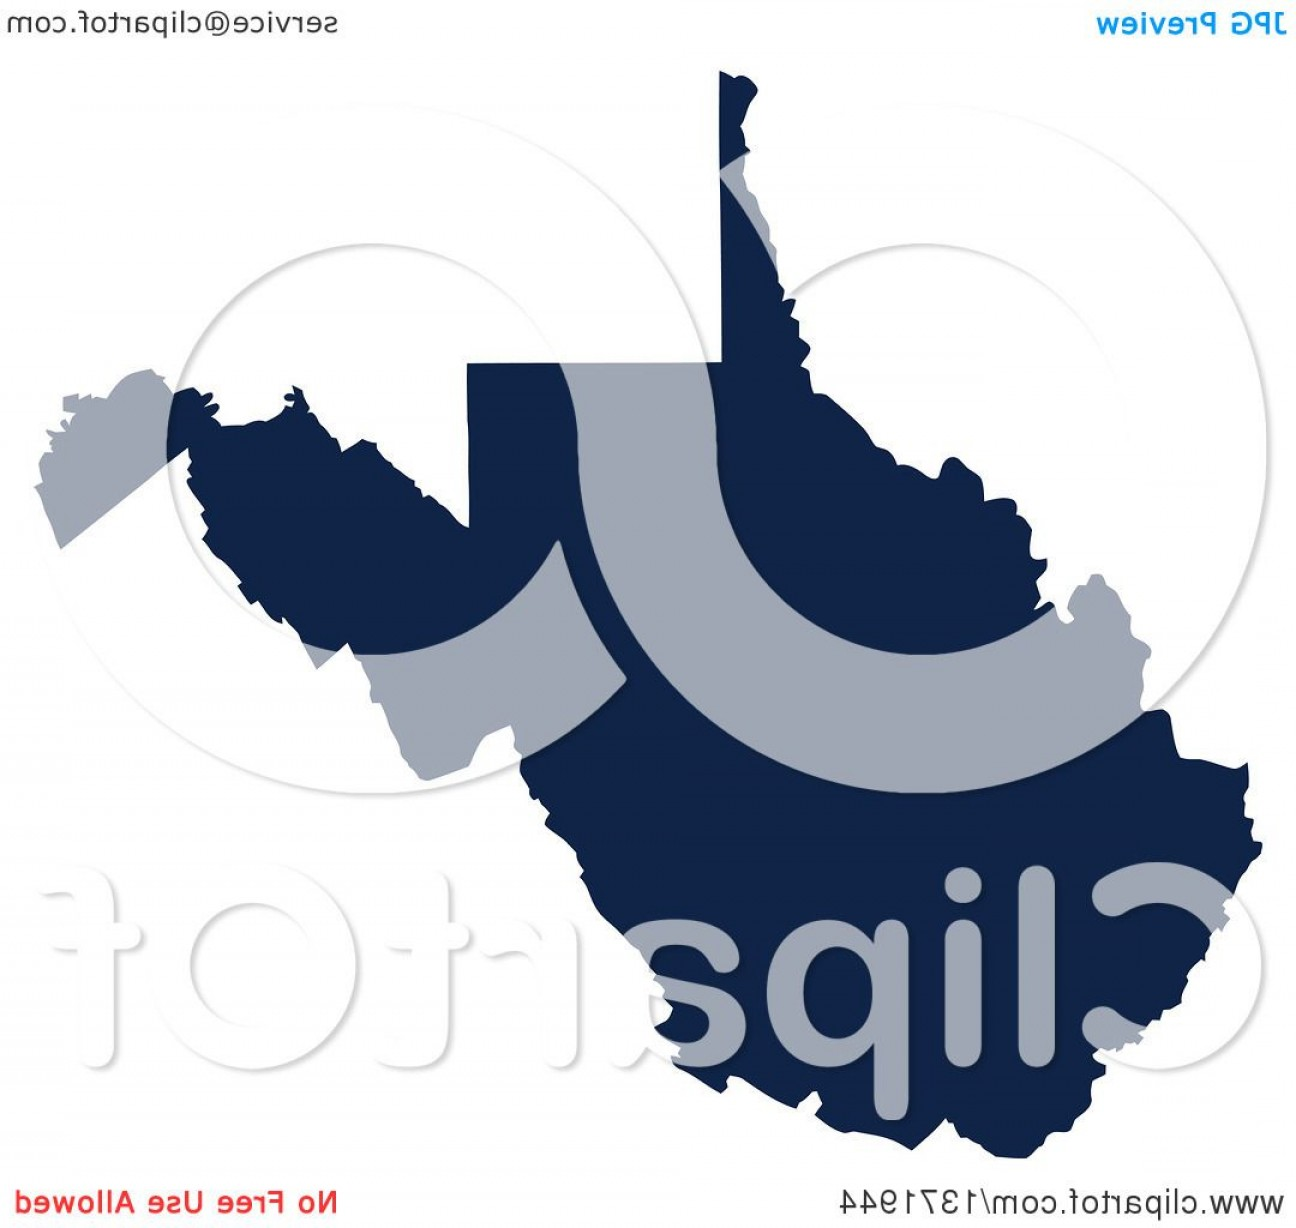 Virginia Vector: Democratic Political Themed Navy Blue Silhouetted Shape Of The State Of West Virginia Usa